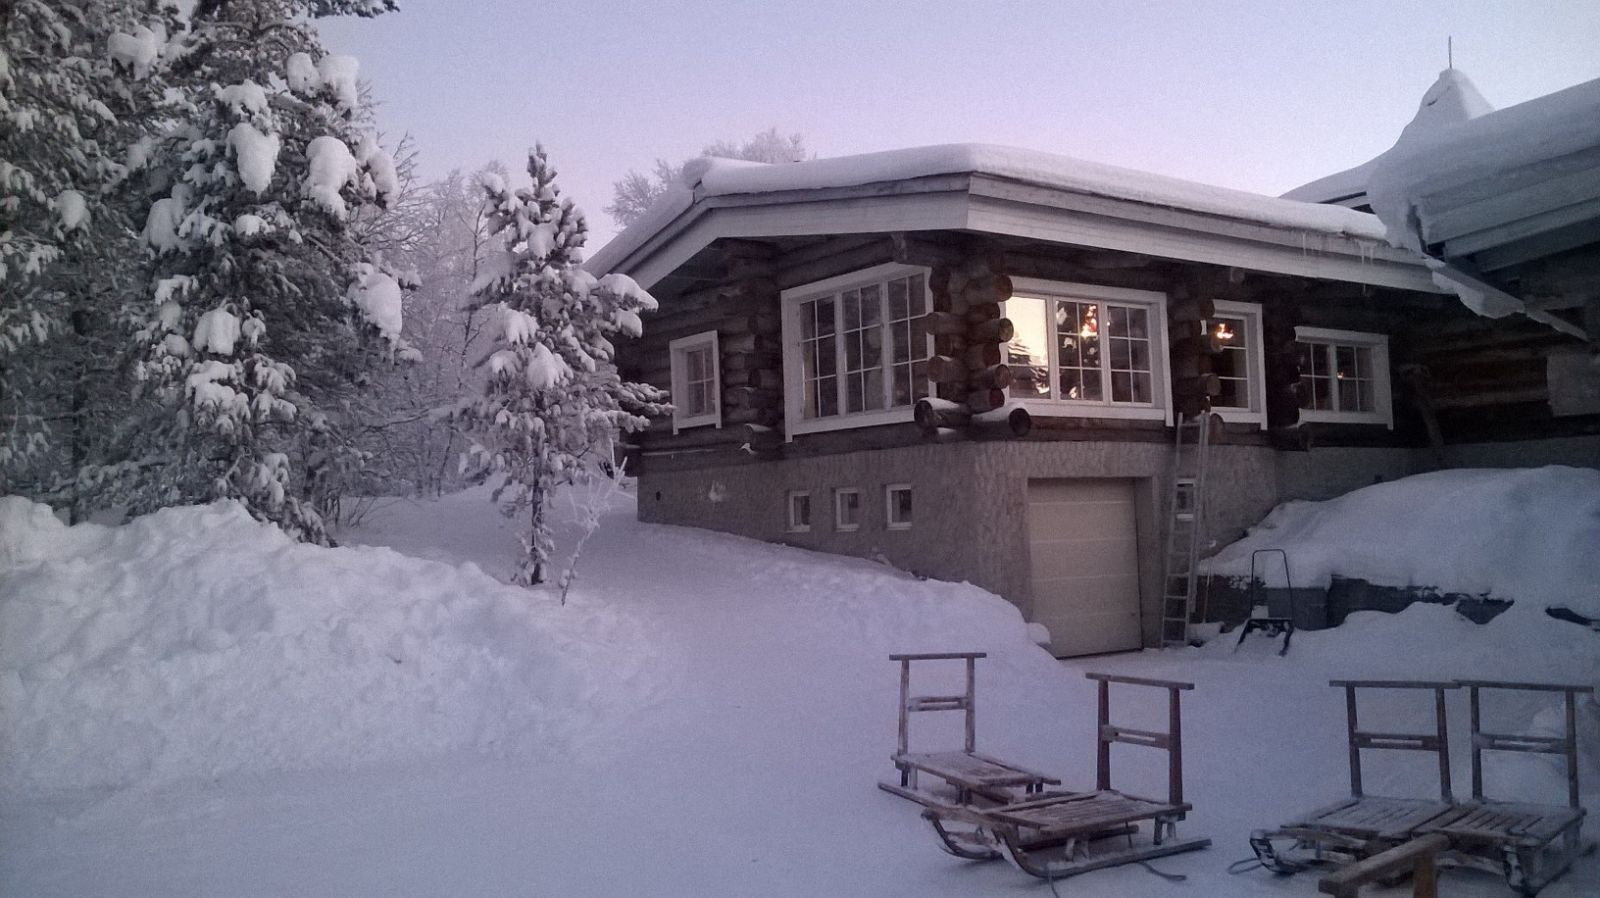 White Christmas in Kakslauttanen